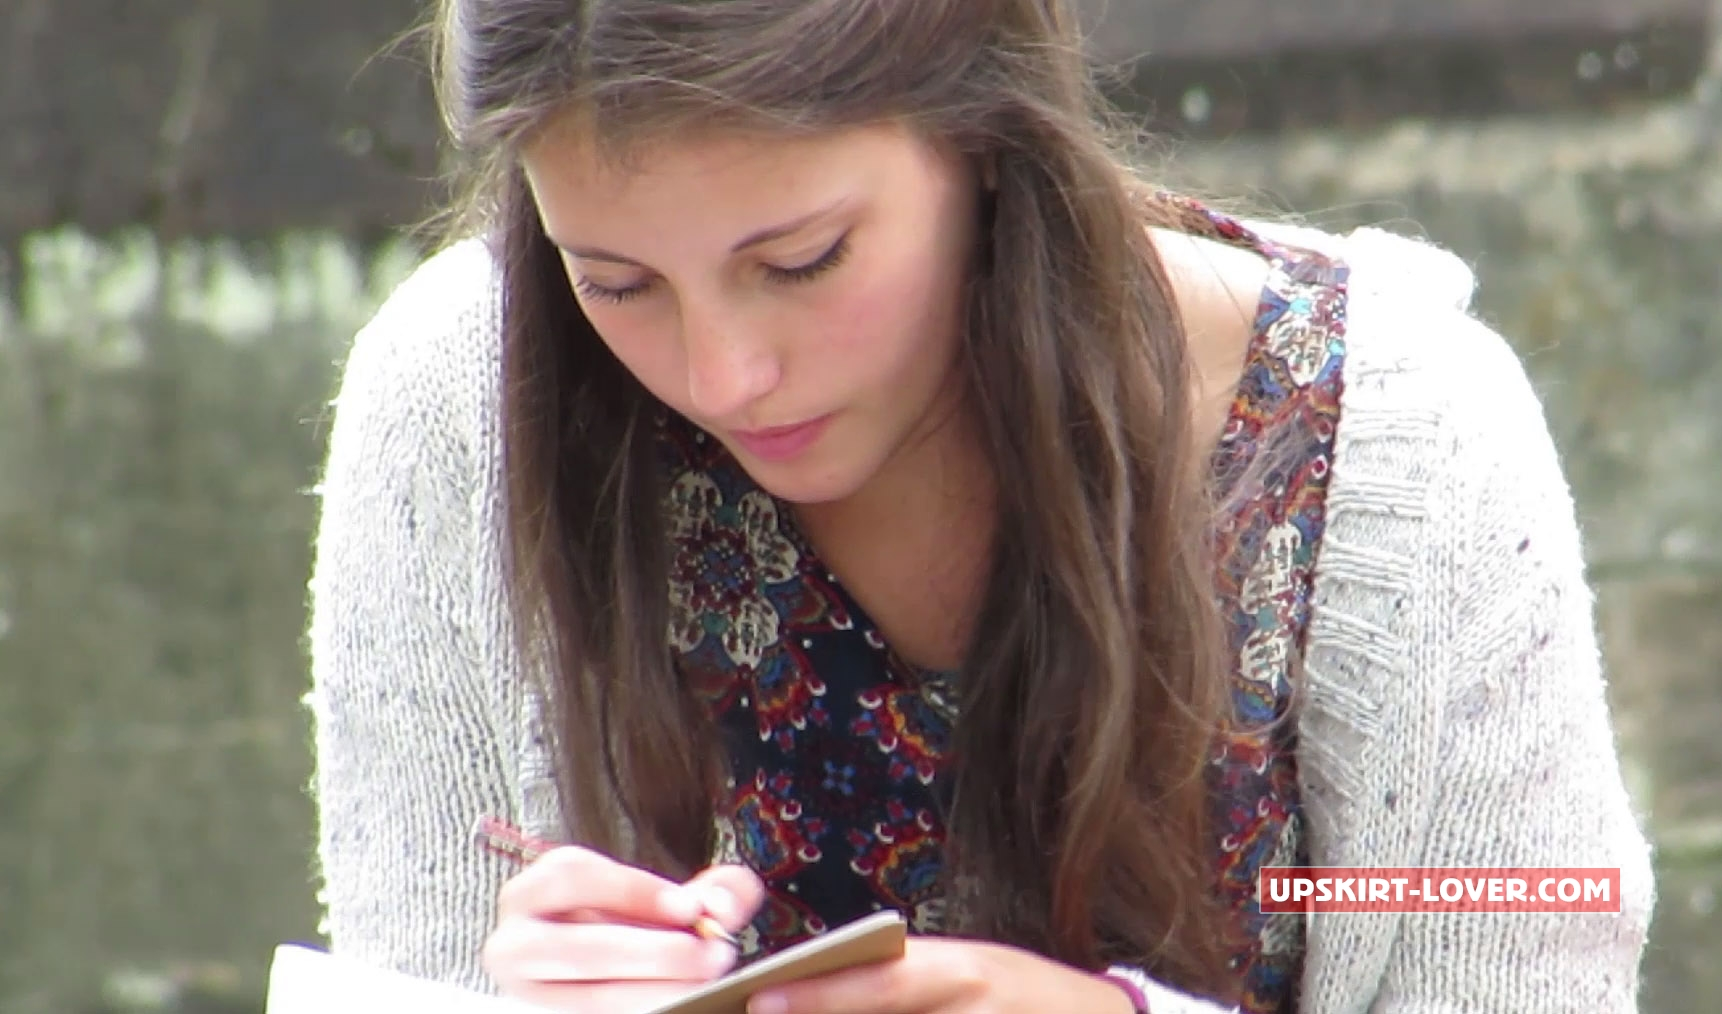 Beautiful young schoolgirl does her homework outside